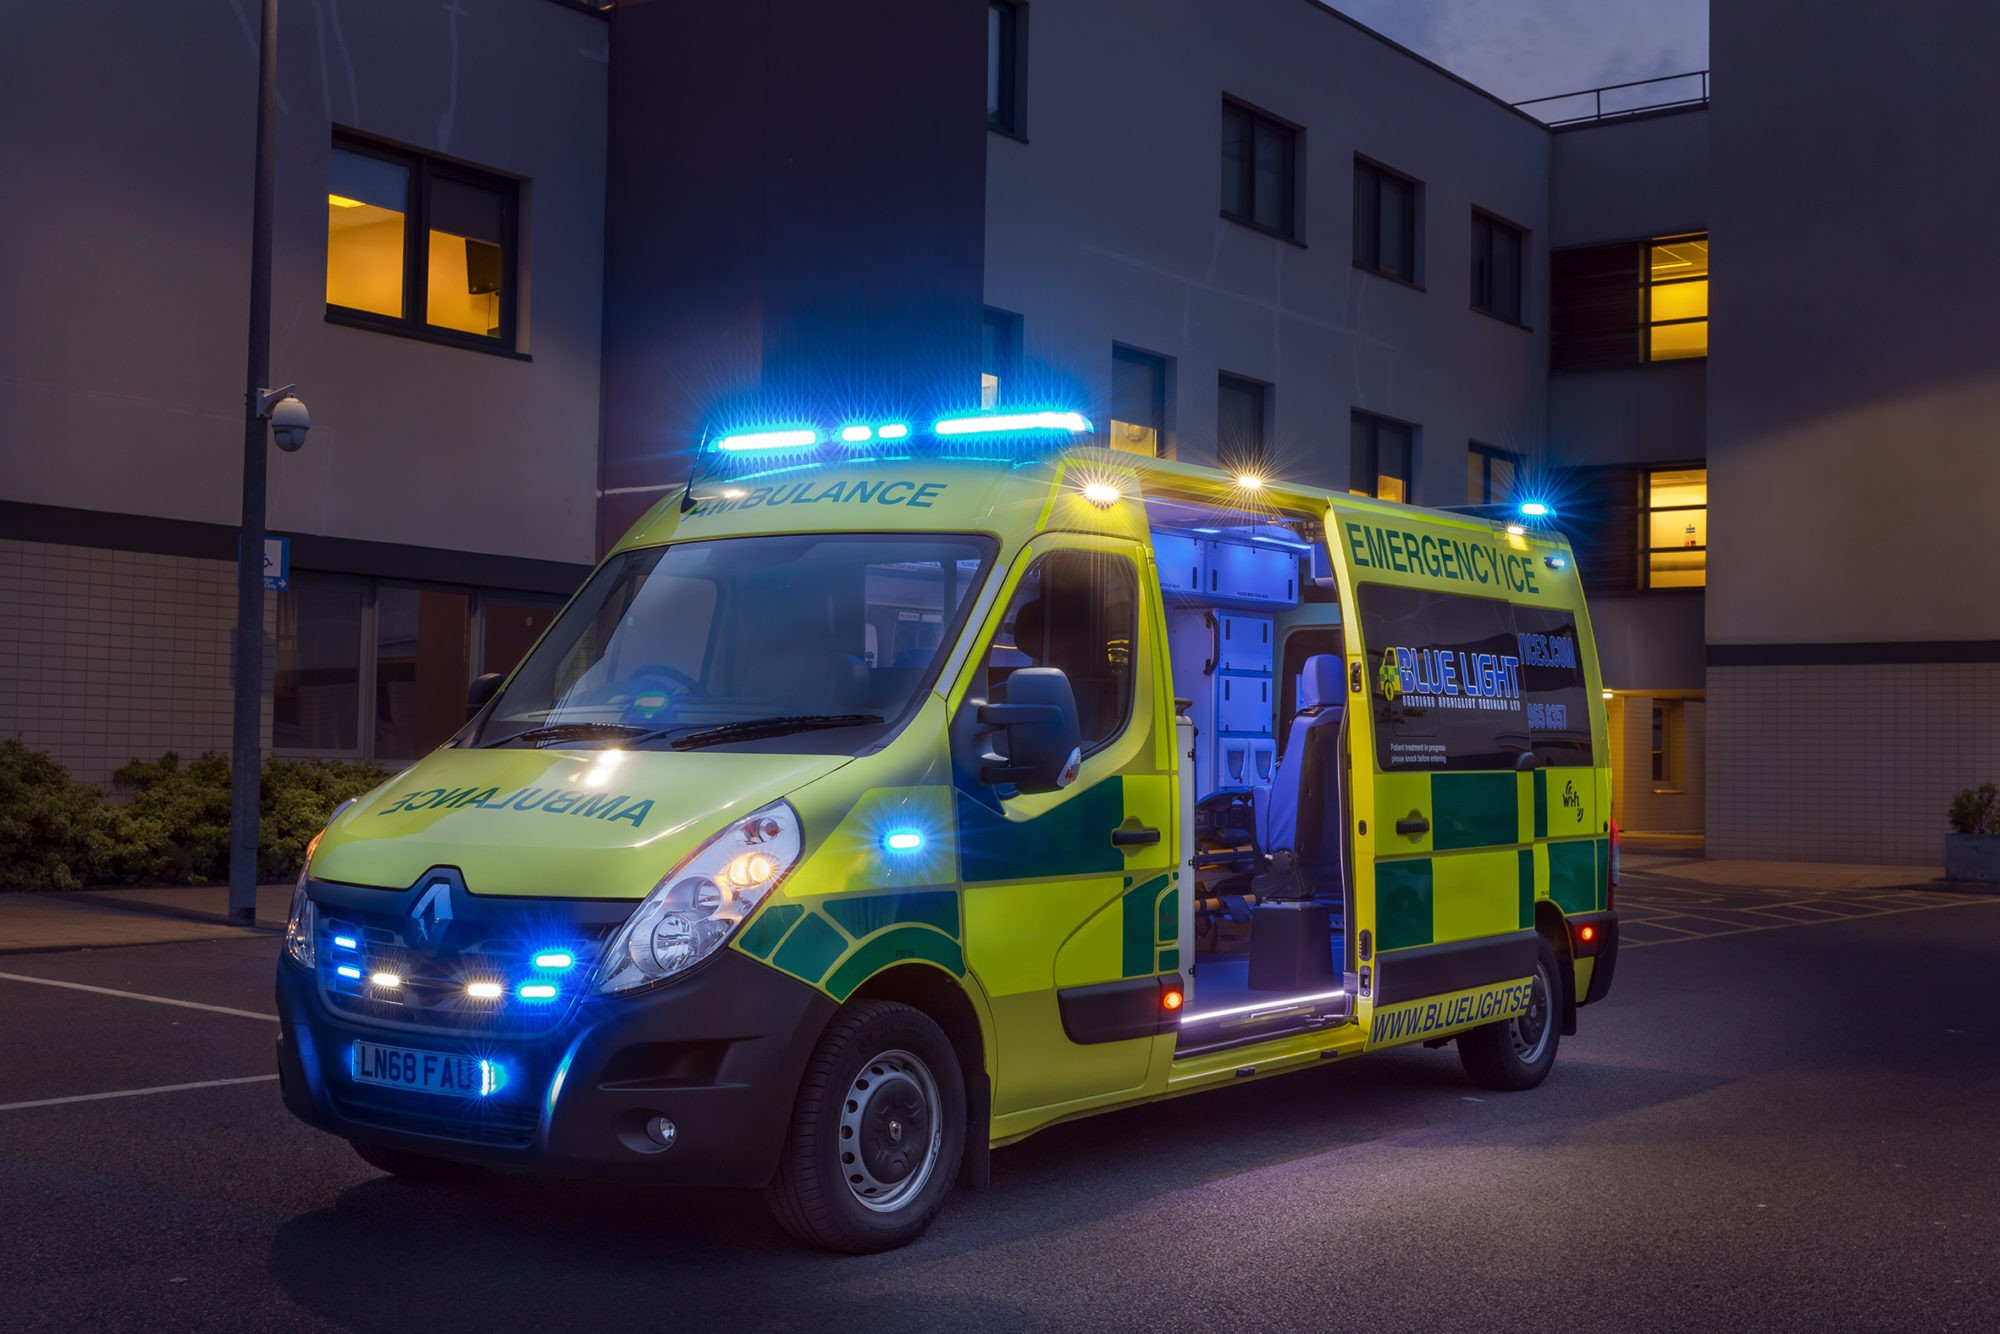 Ambulance livery, beacons and light bars